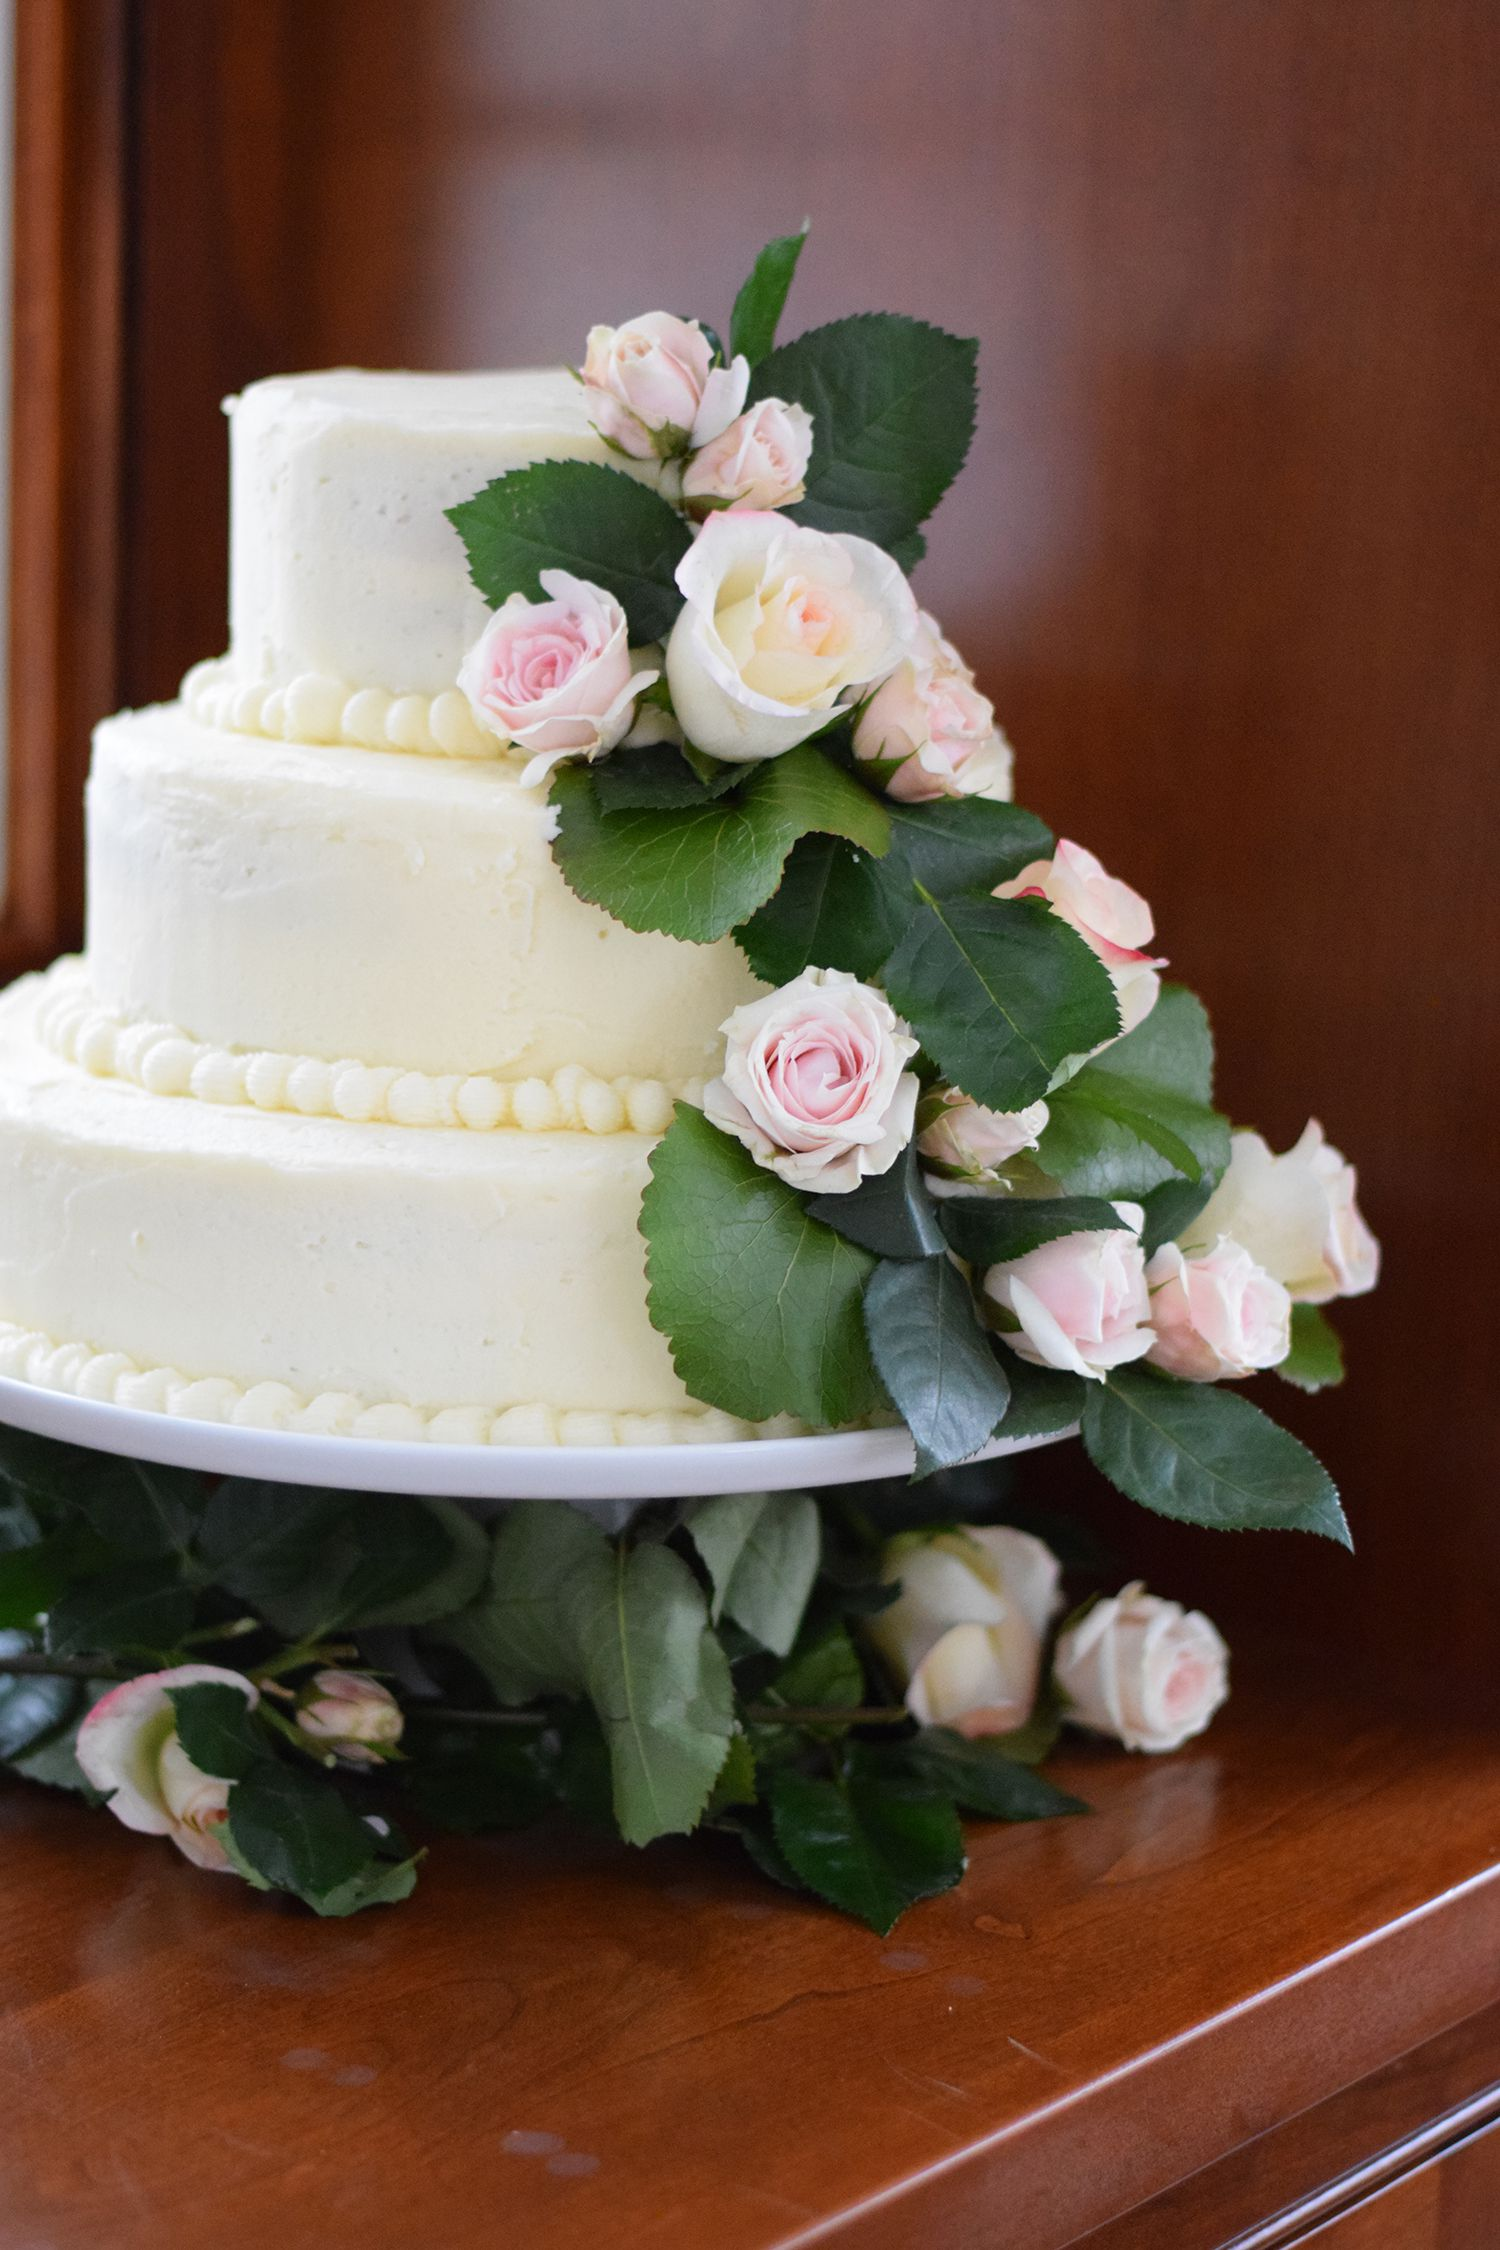 Inspiring tales of diy wedding cakes how to bake and decorate a 3 tier wedding cake junglespirit Choice Image